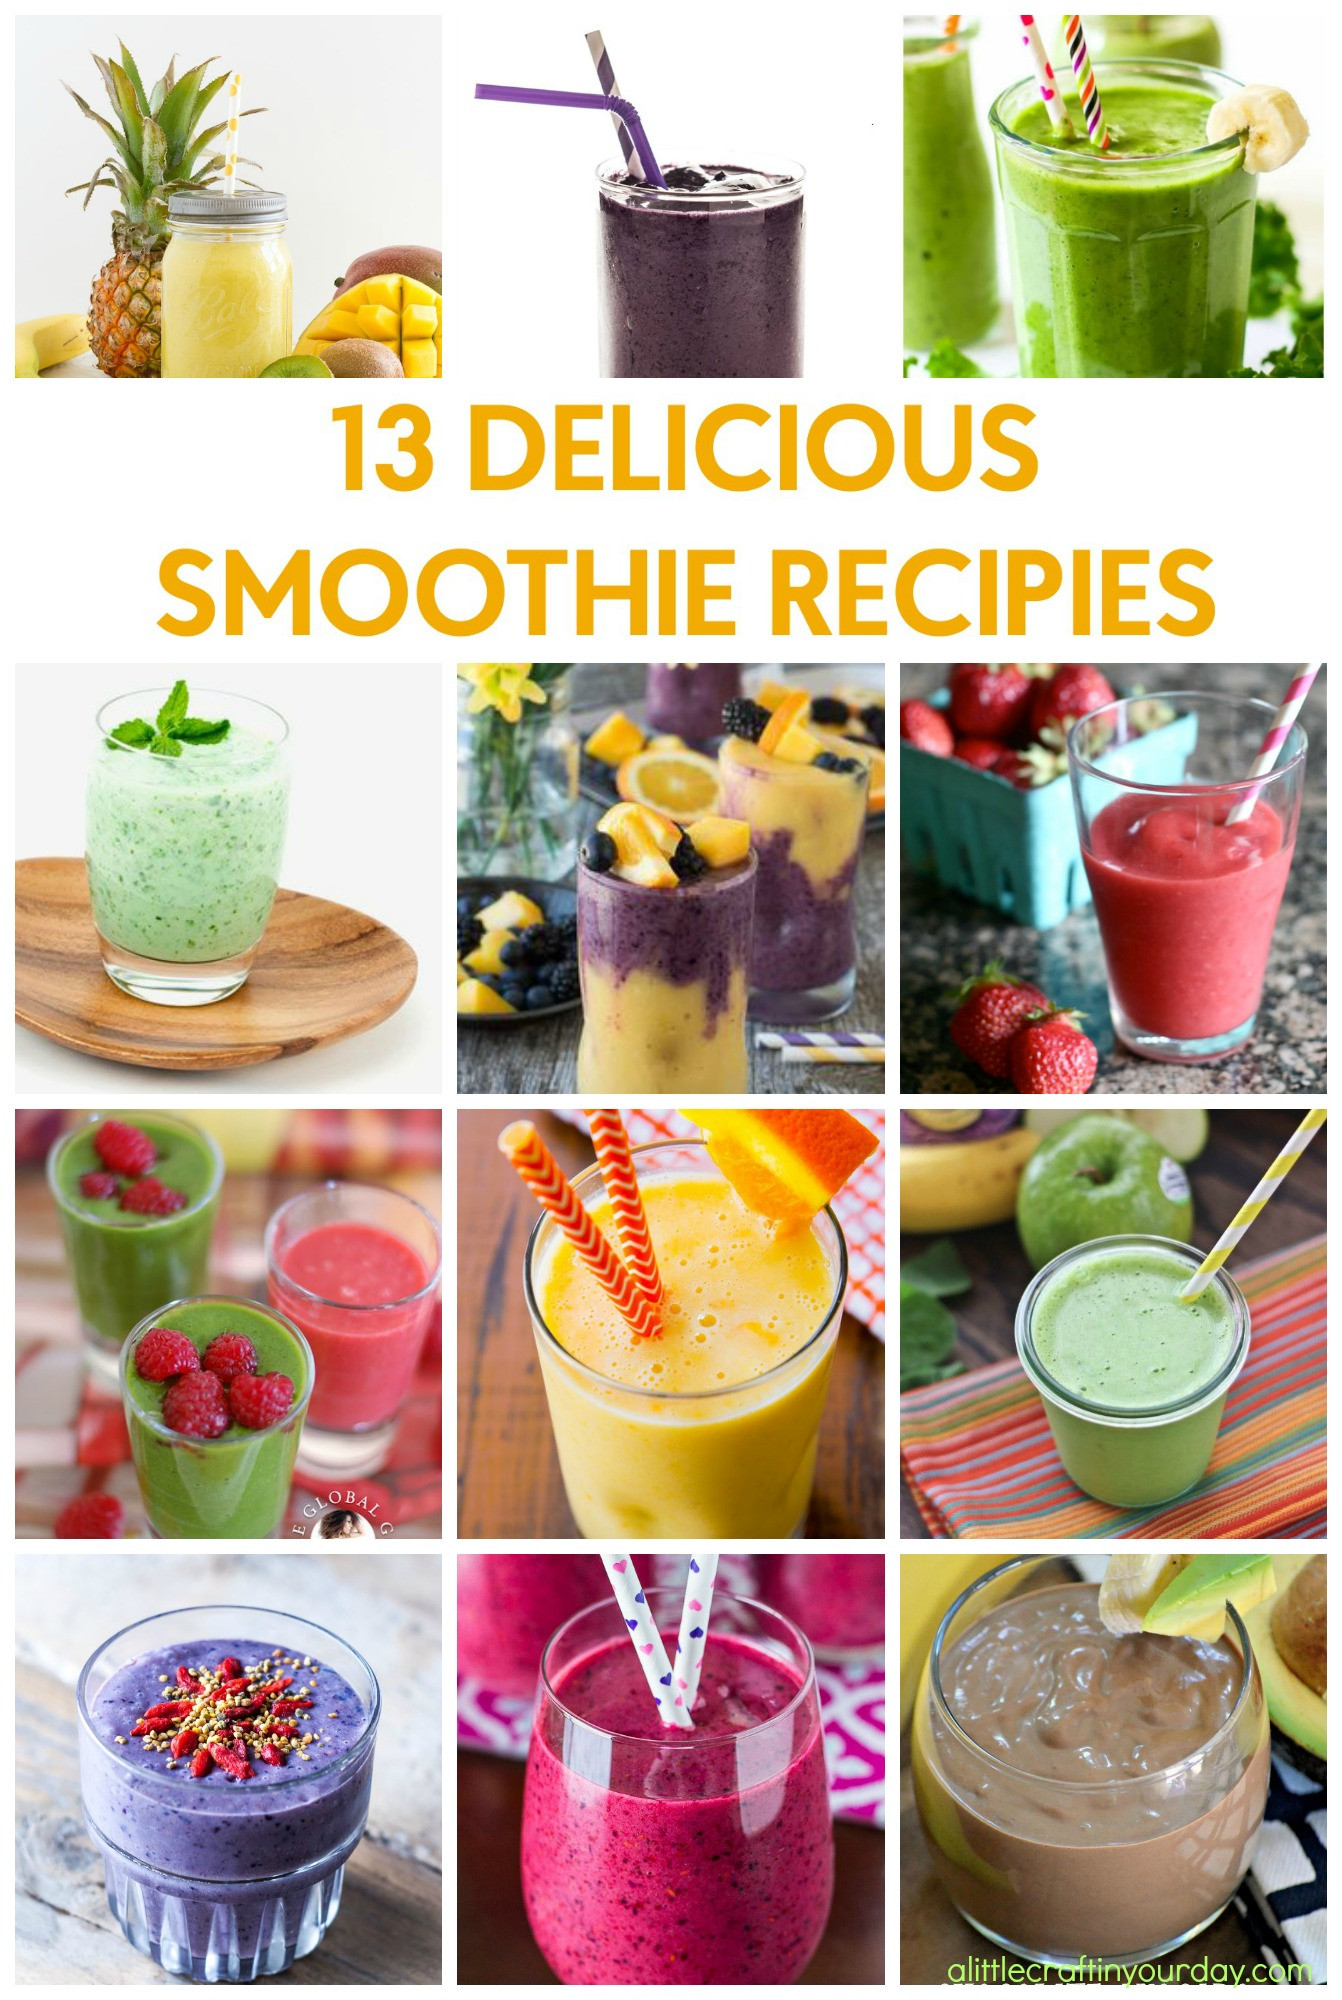 Delicious Smoothie Recipes  13 Delicious Smoothie Recipes A Little Craft In Your Day